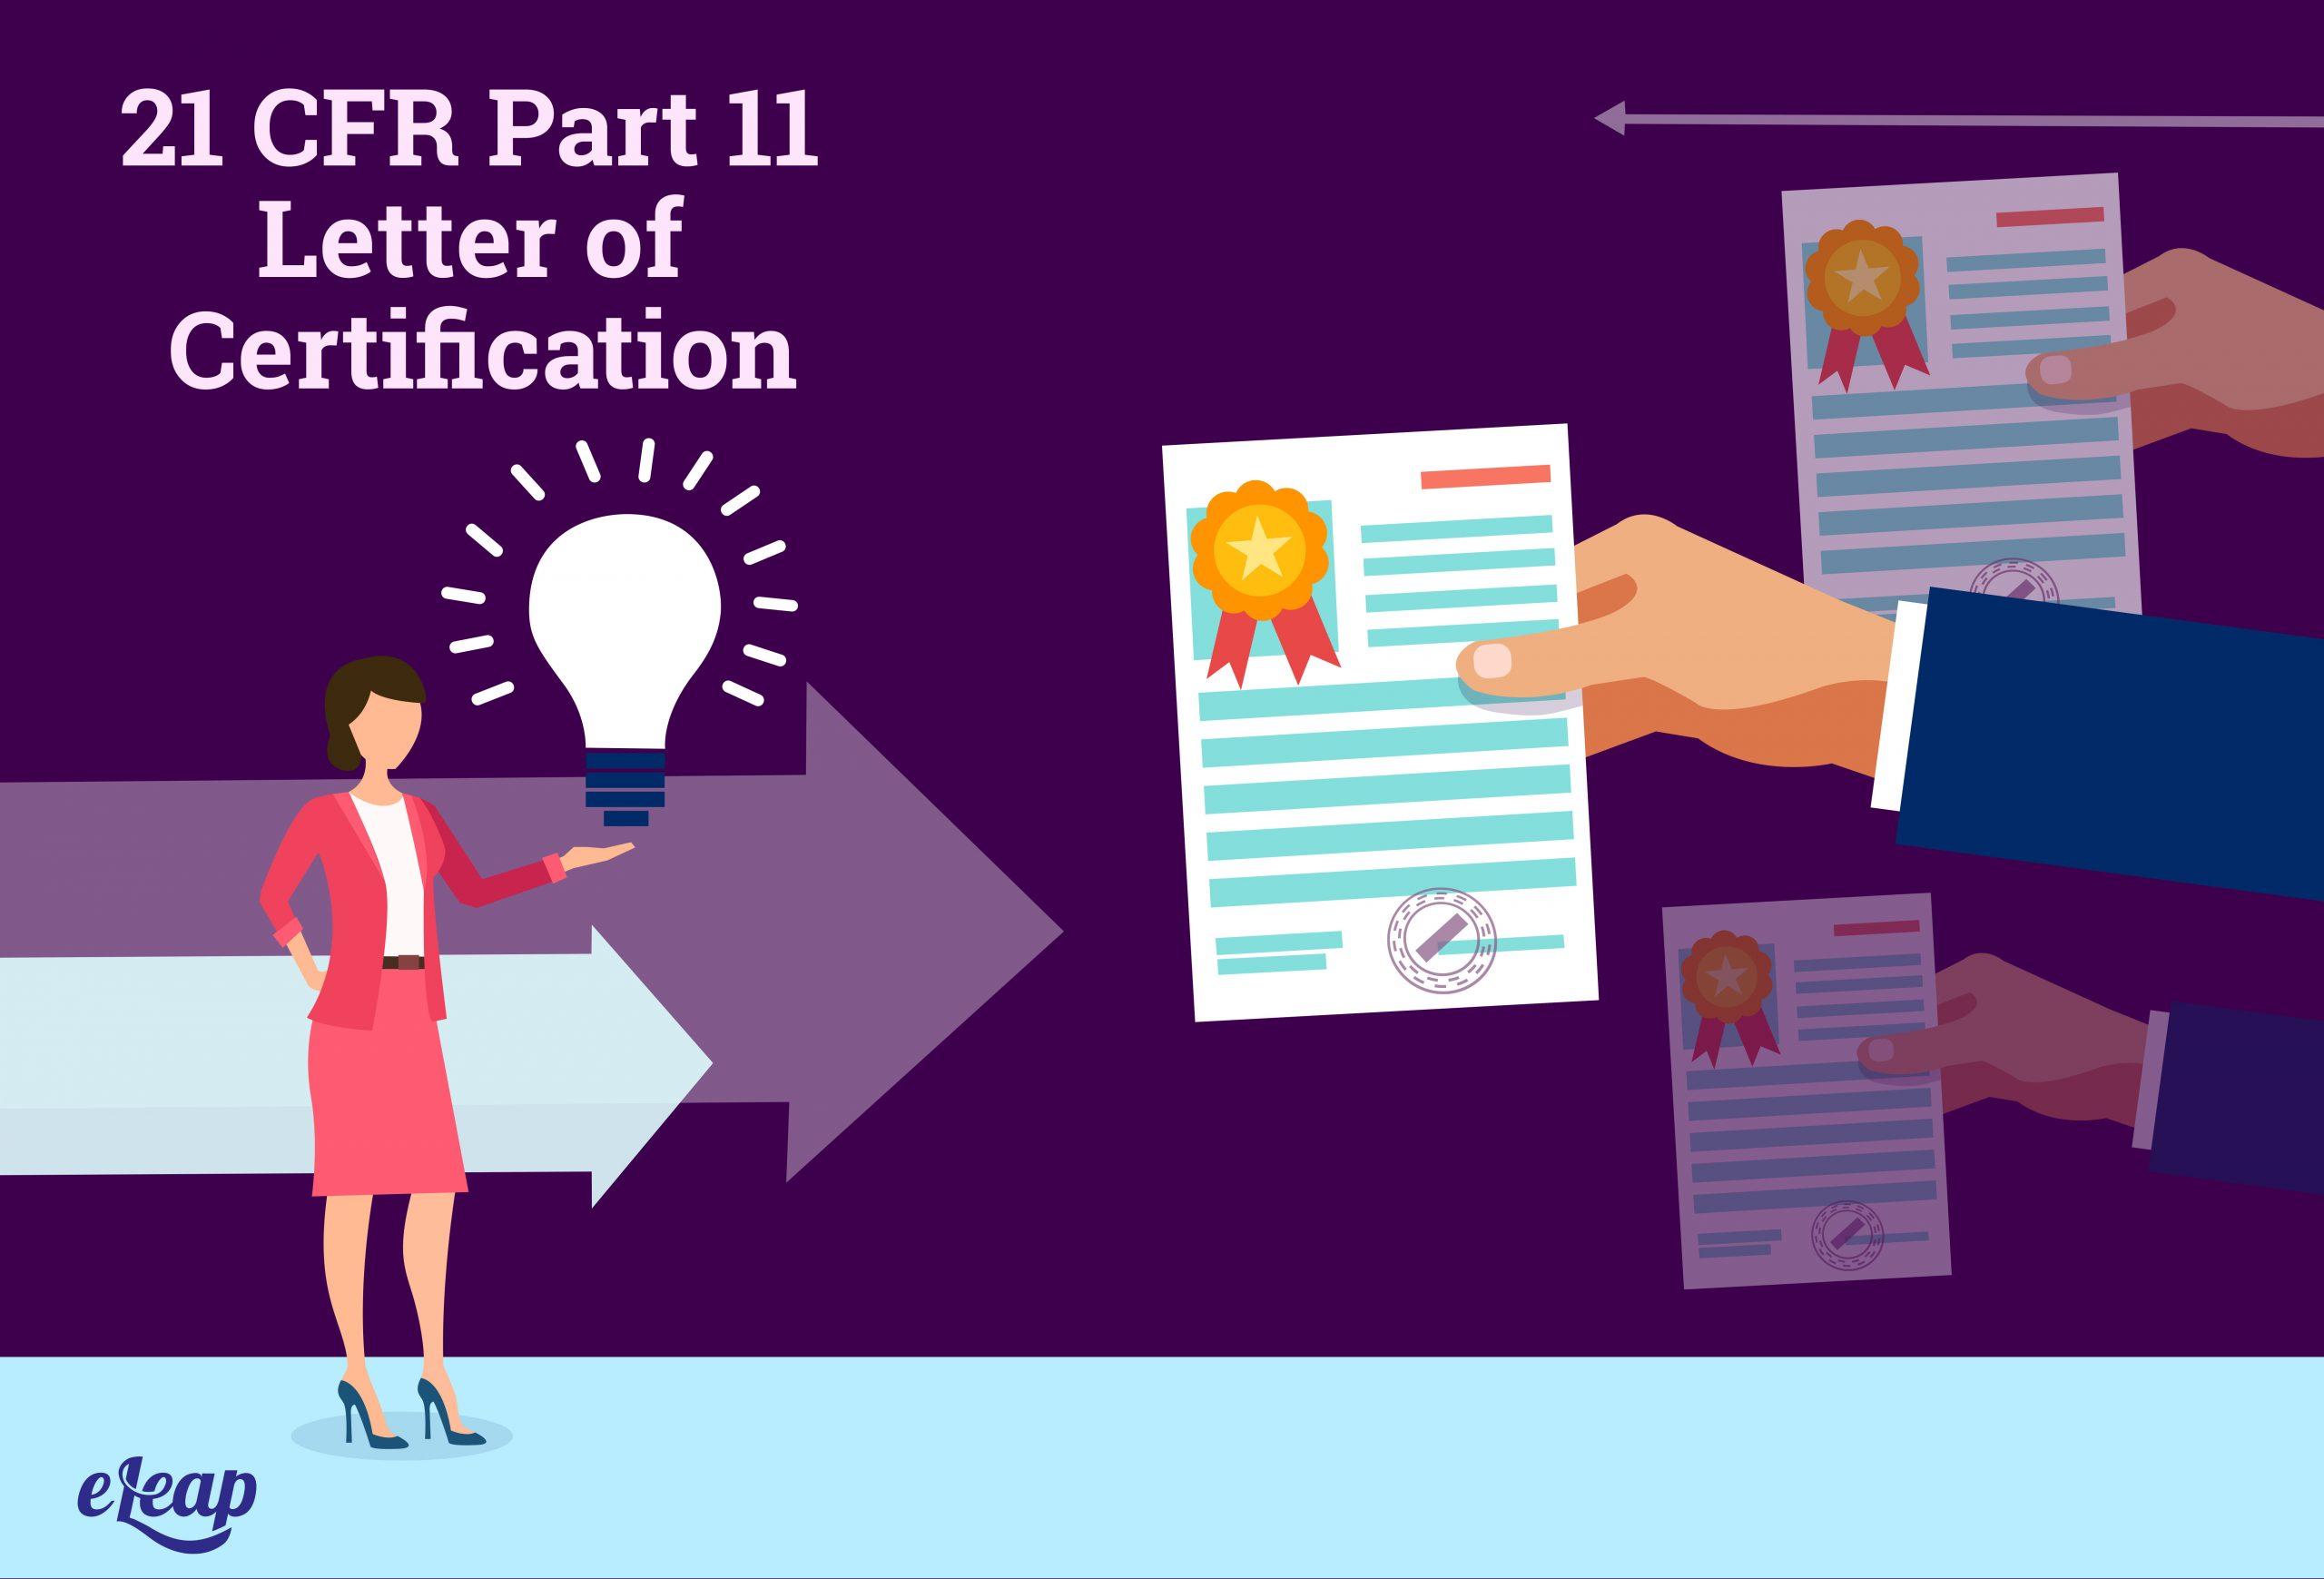 21 CFR Part 11 Letter of Certification